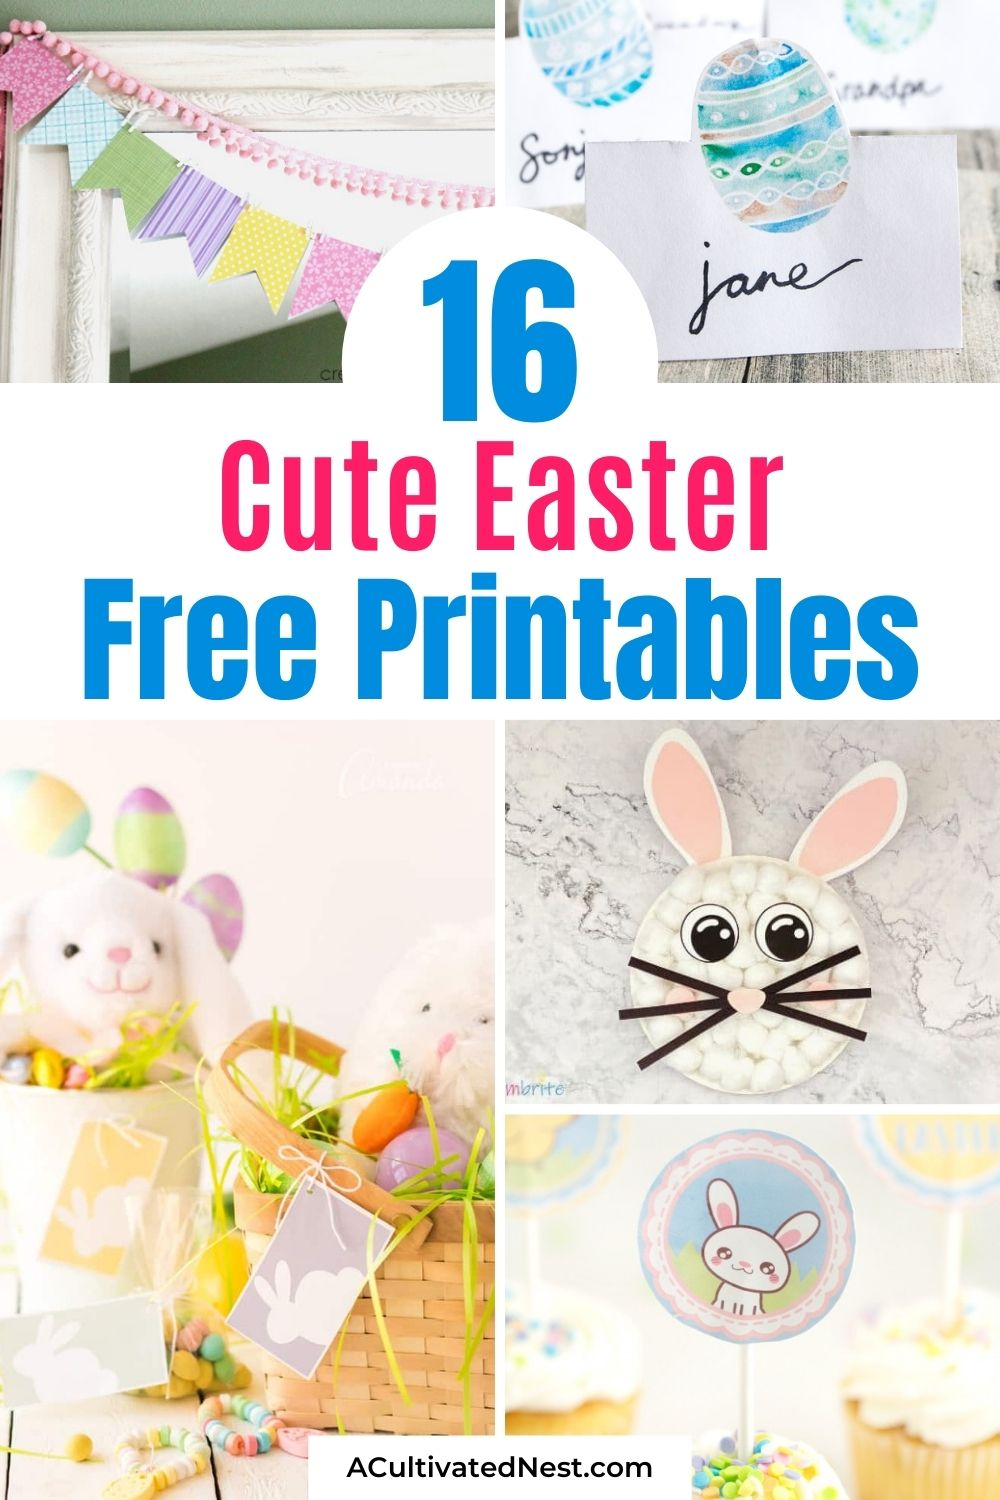 16 Cute Free Easter Printables- These fun Easter free printables include crafts and printable décor that will help you to decorate for Easter on a budget! Some fun kids' crafts are also included! | #EasterPrintables #freePrintables #kidsActivities #printables #ACultivatedNest